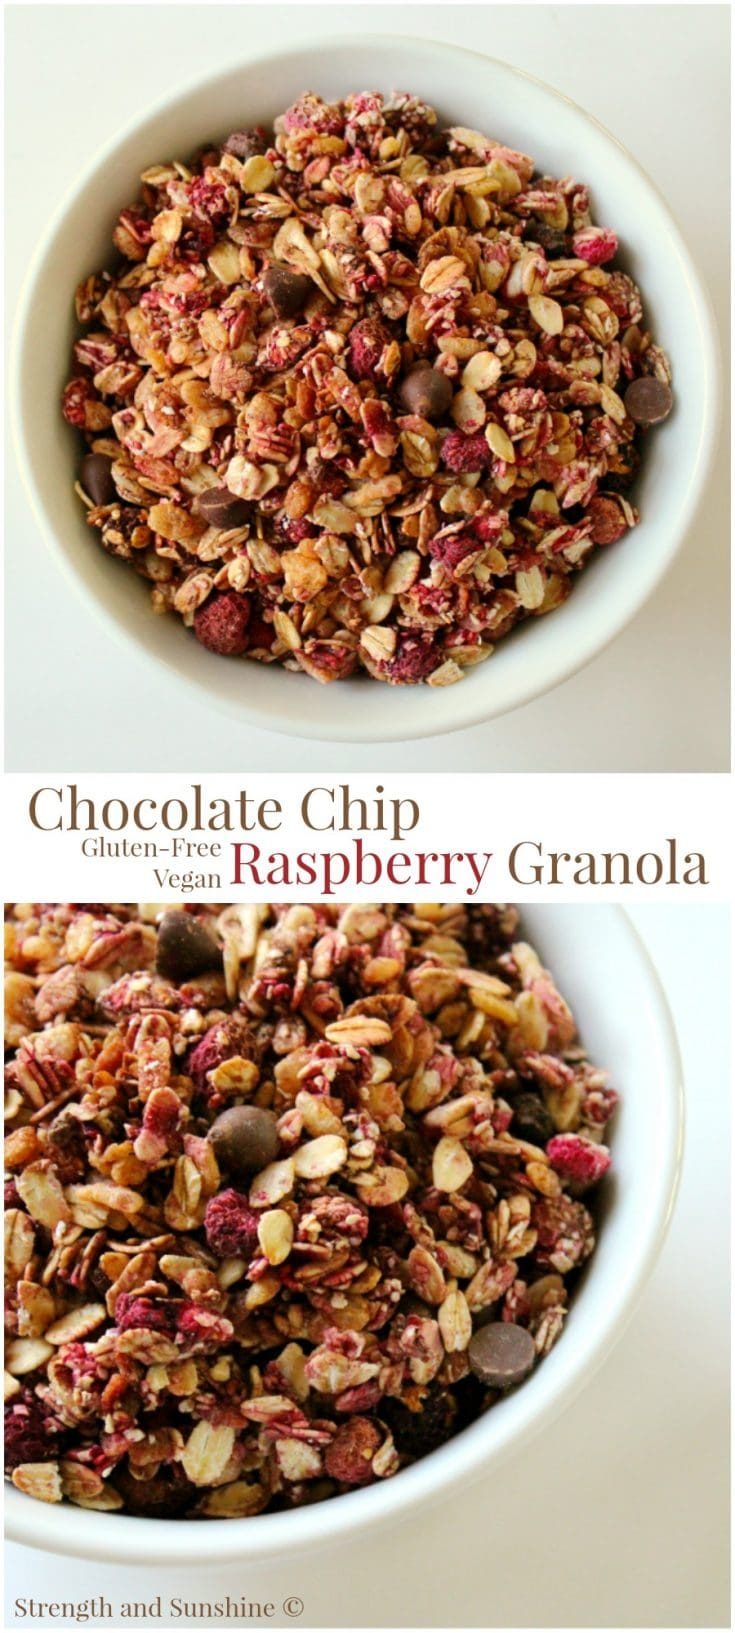 Chocolate Chip Raspberry Granola